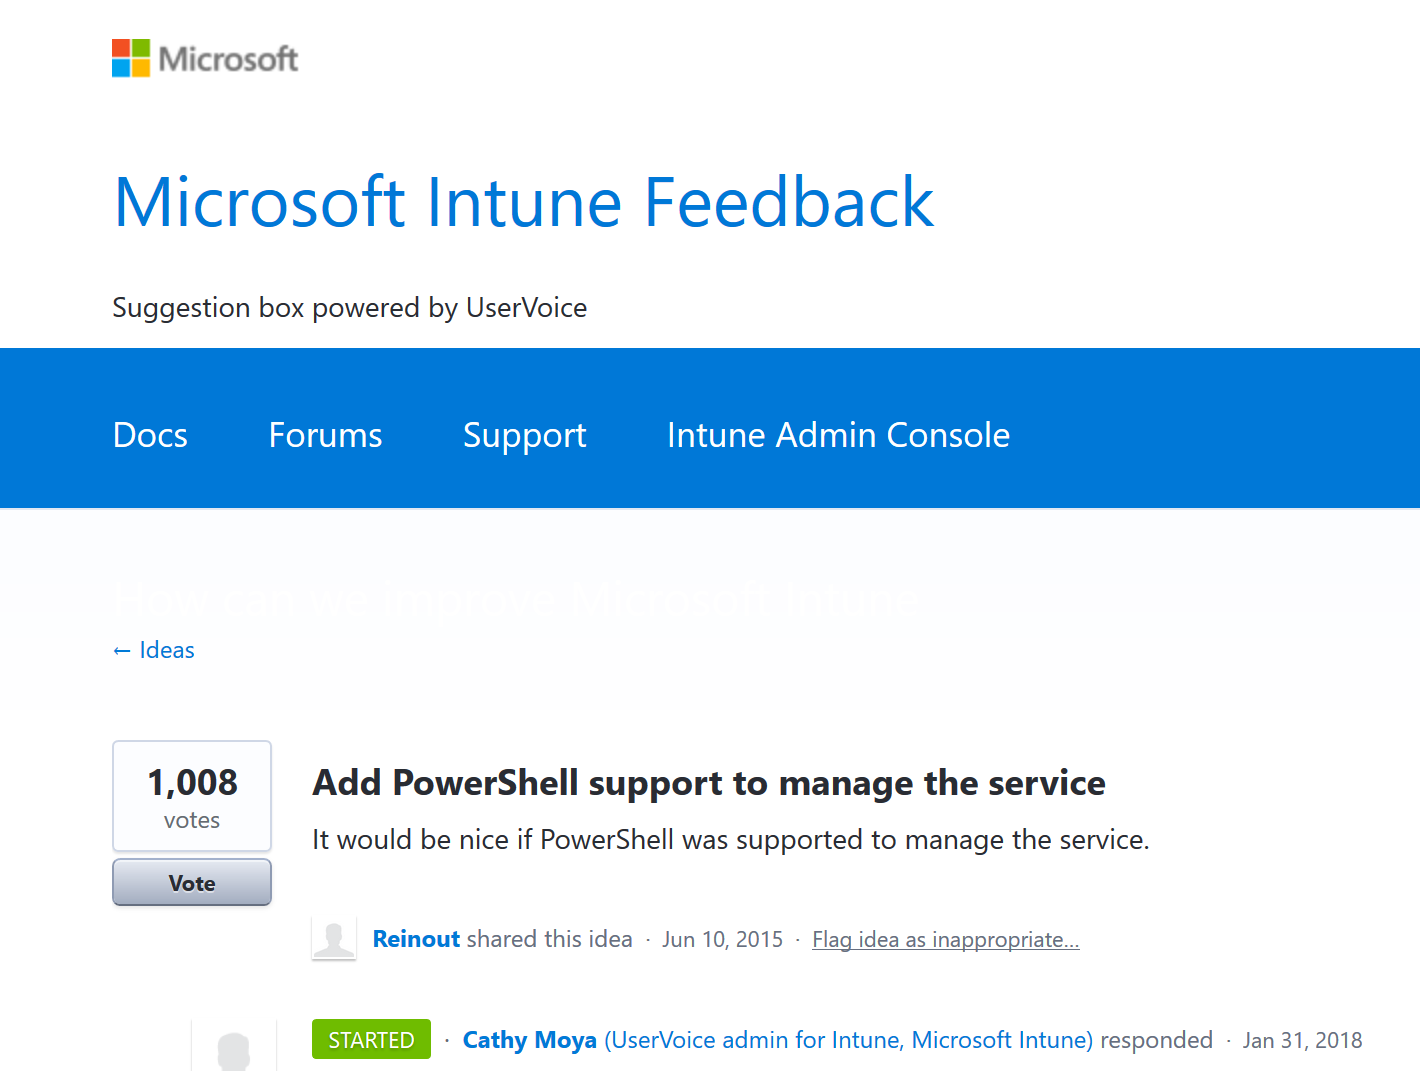 Learn how to leverage Intune support for Microsoft Graph and